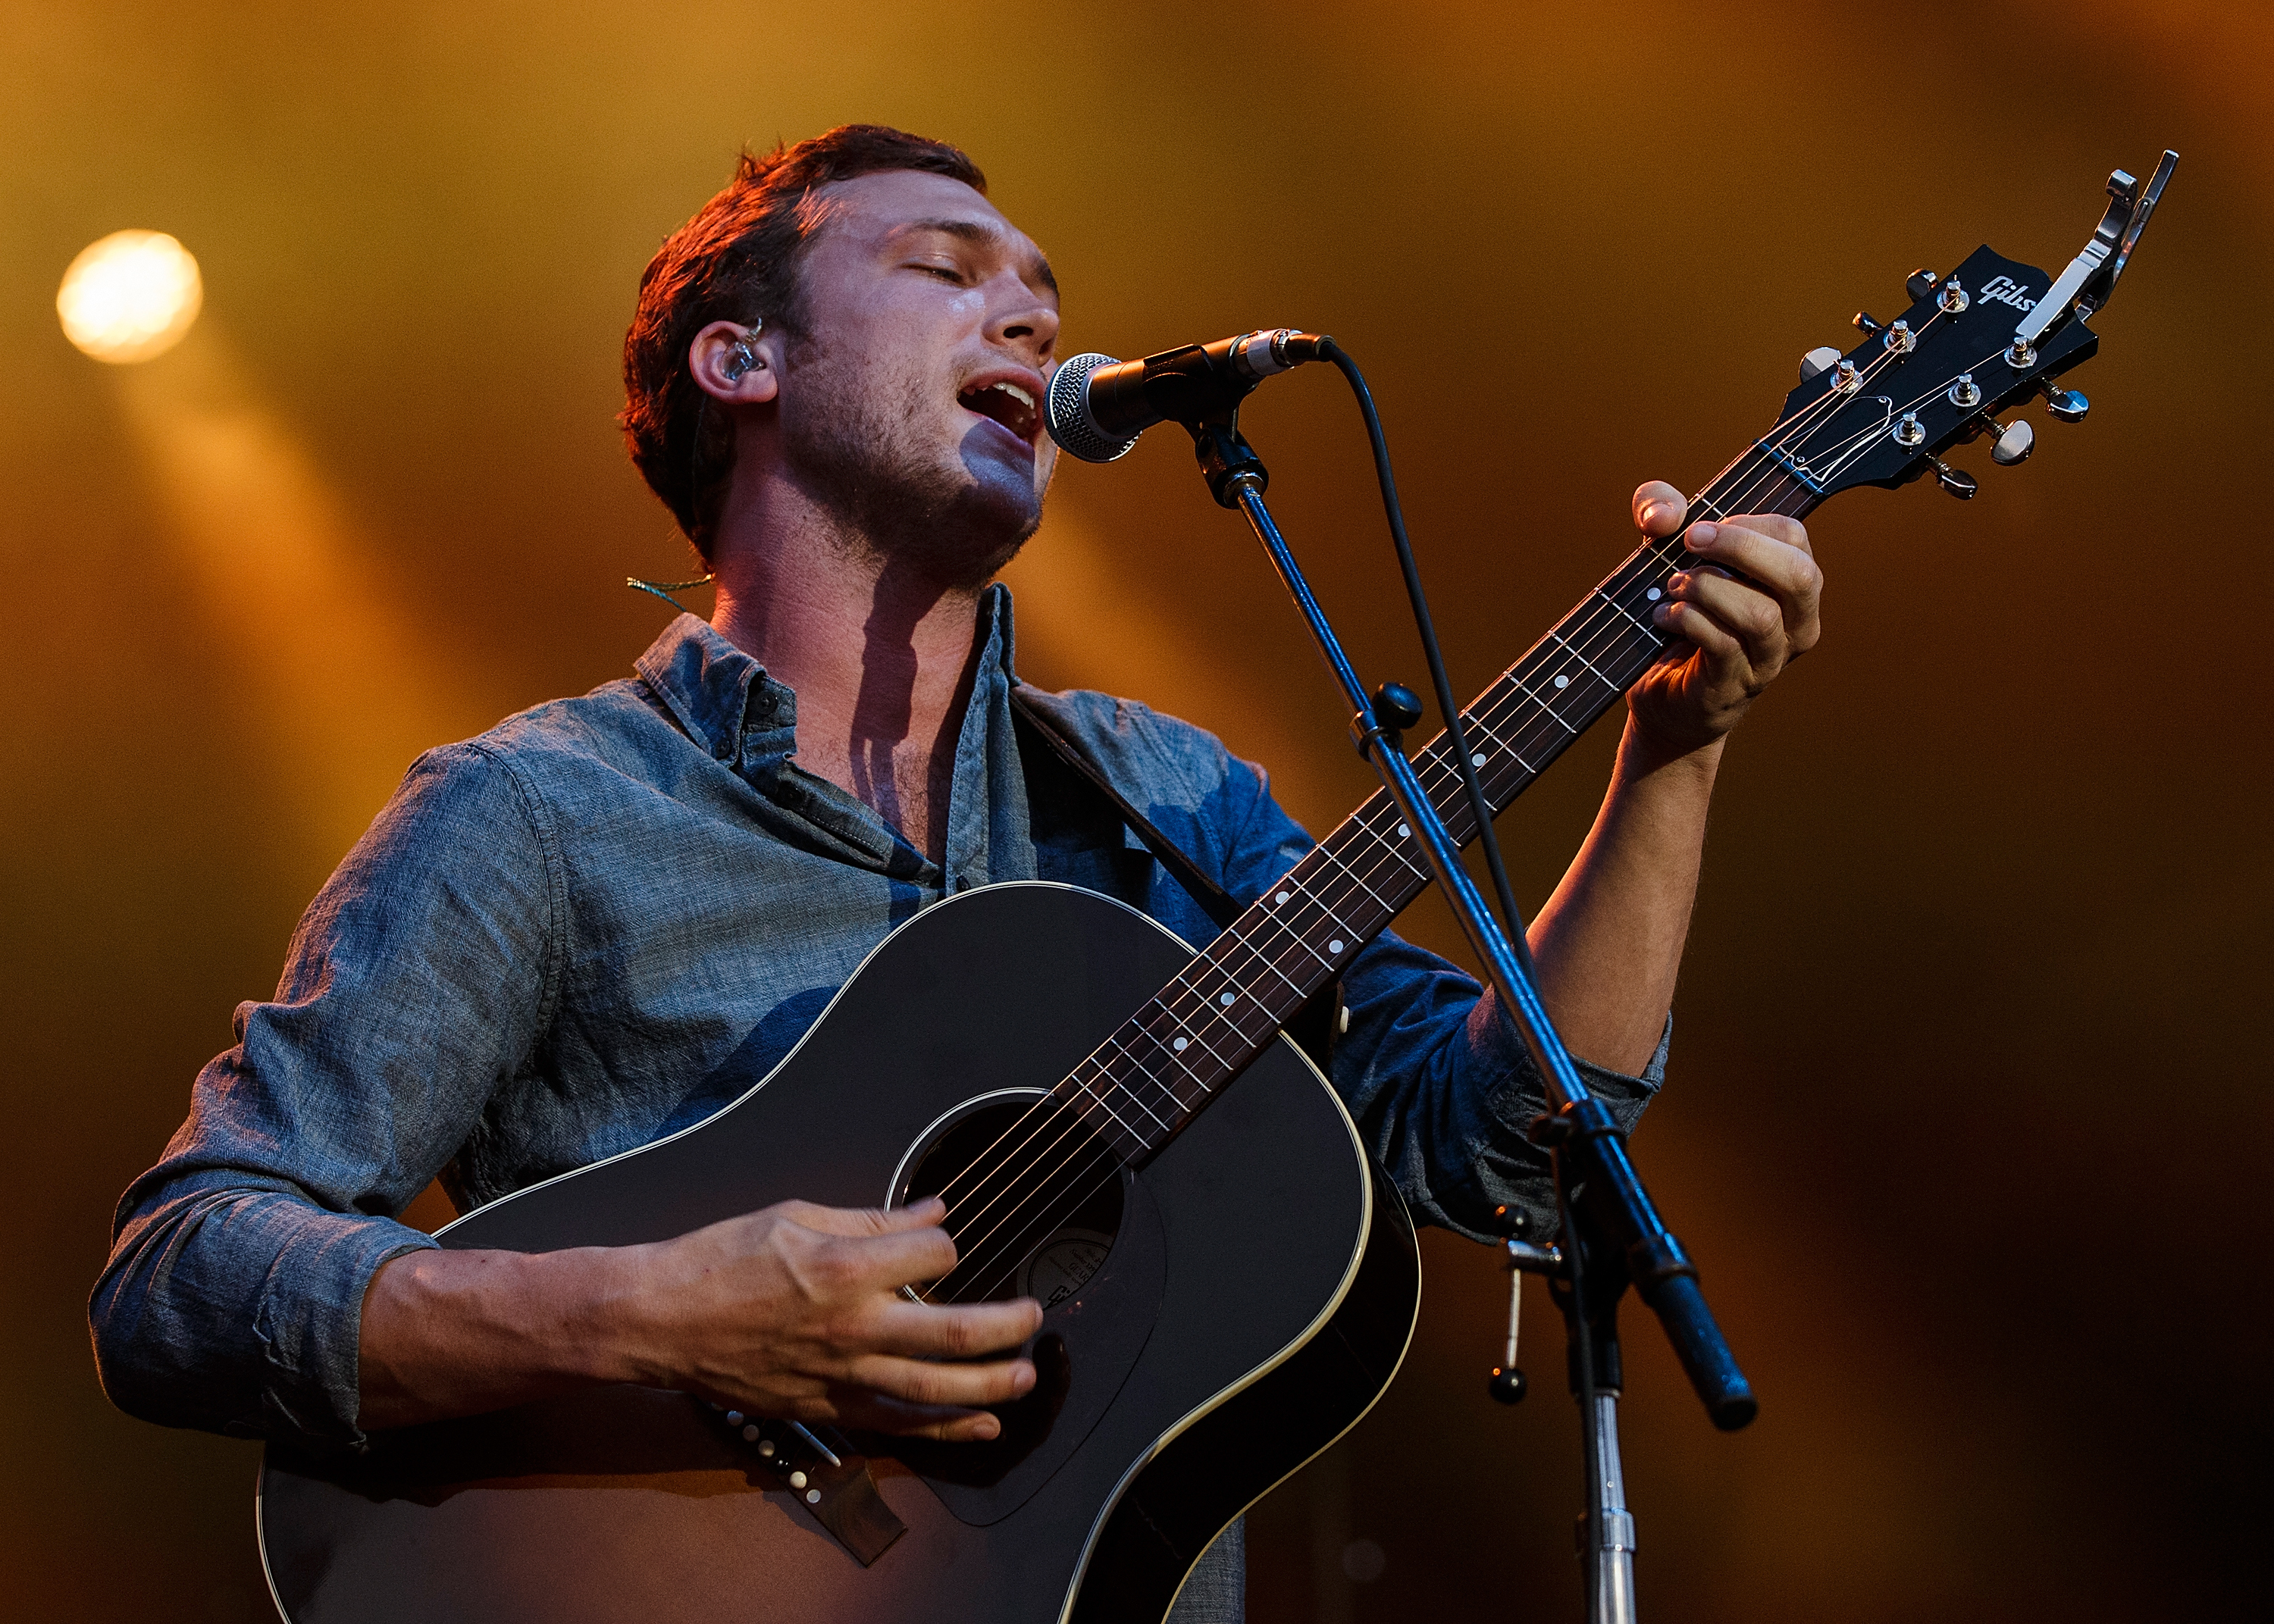 Phillip Phillips performs on stage at PNE Amphitheatre during Day 1 of The Fair At The PNE on August 16, 2014 in Vancouver, Canada.